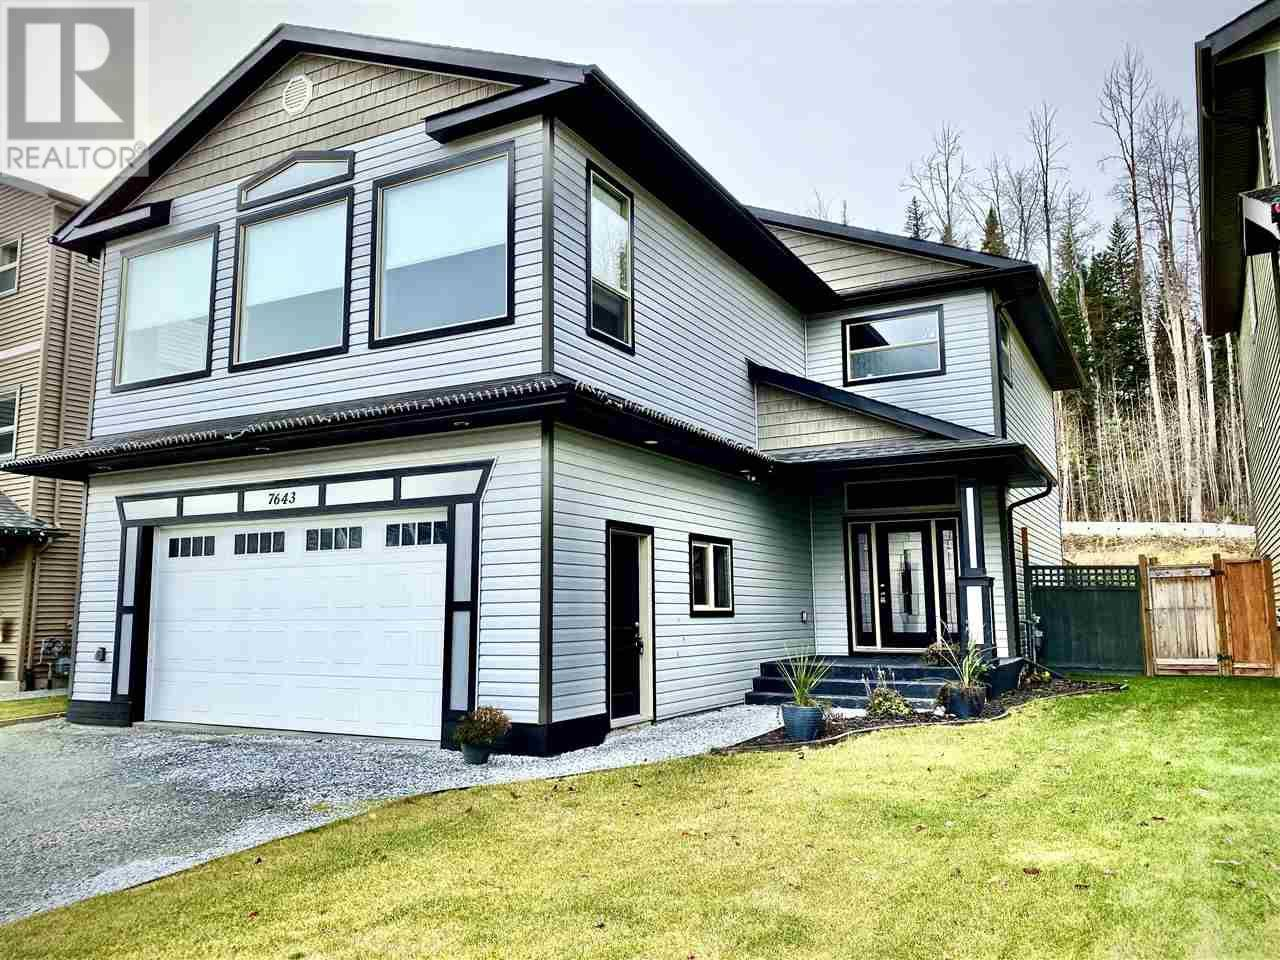 House for sale at 7643 Stillwater Cres Prince George British Columbia - MLS: R2413103